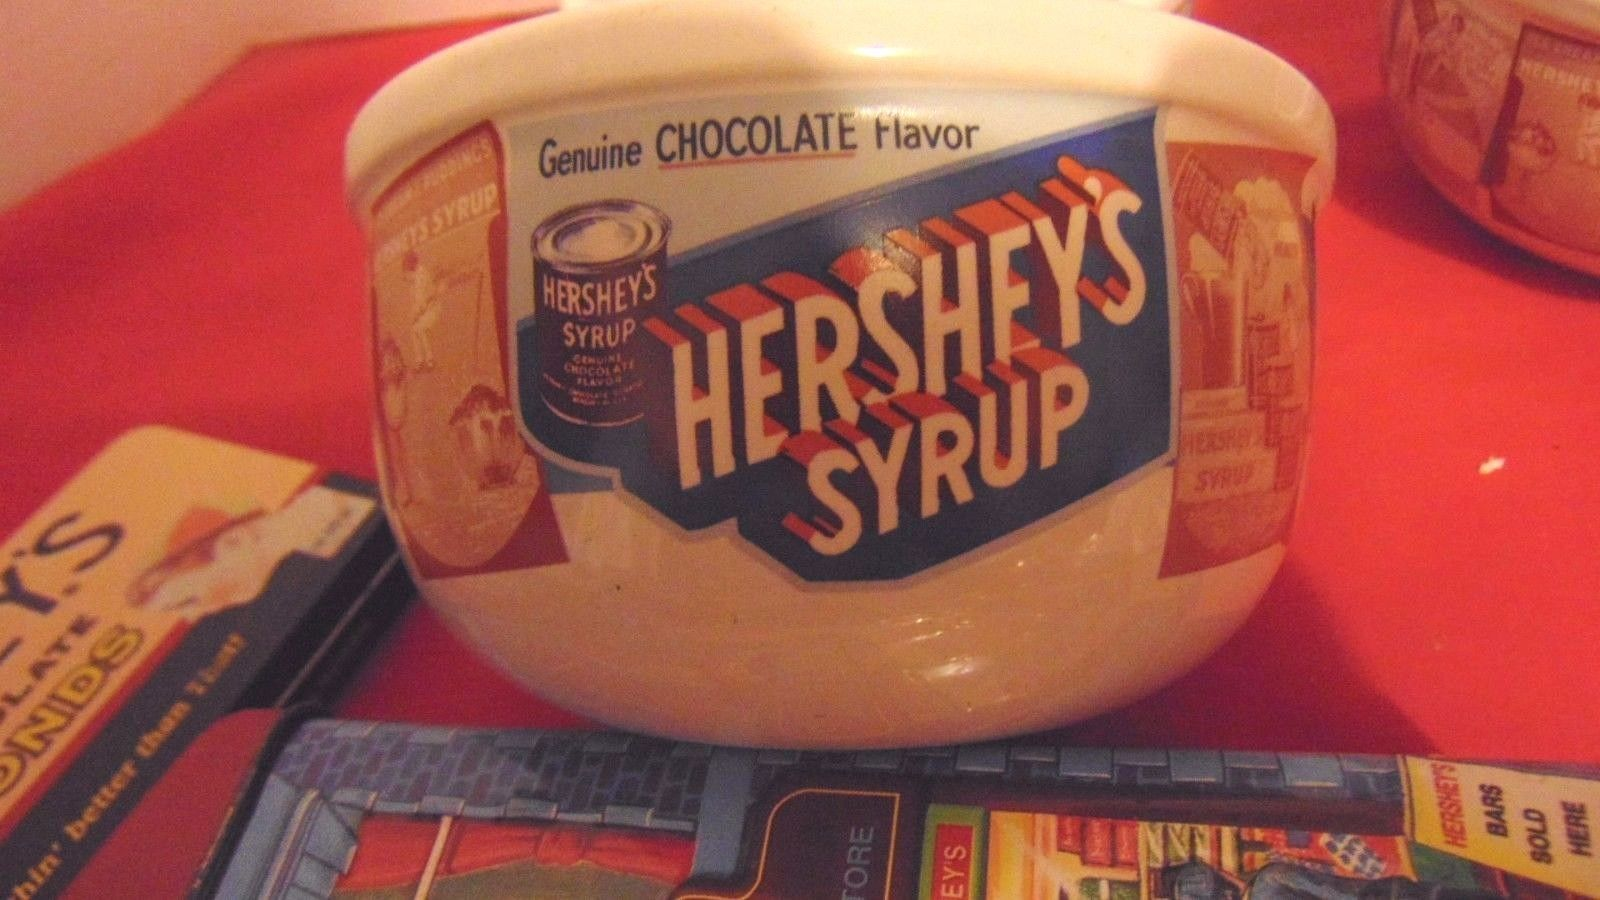 Hersheys Tins-Soup/Cereal Bowls-3 Each-Houston Harvest Gift Candy Store-Candy image 10